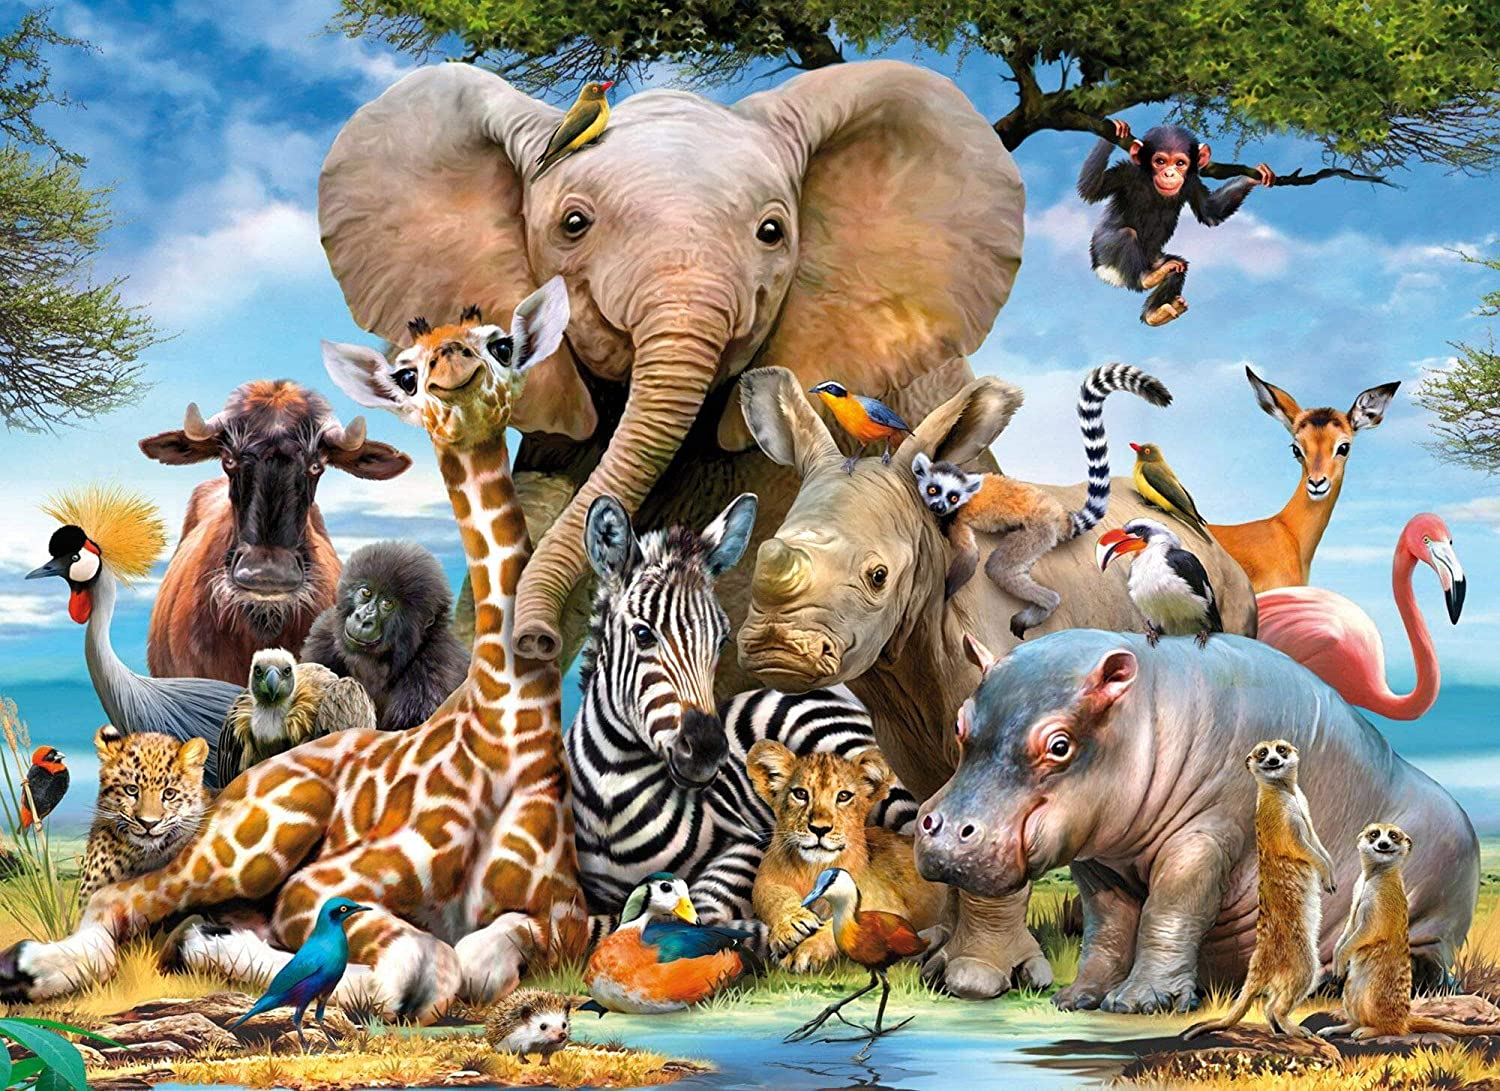 1000 PCS Jigsaw Puzzles - Animal World, Educational Intellectual Decompressing Fun Game for Kids Adults